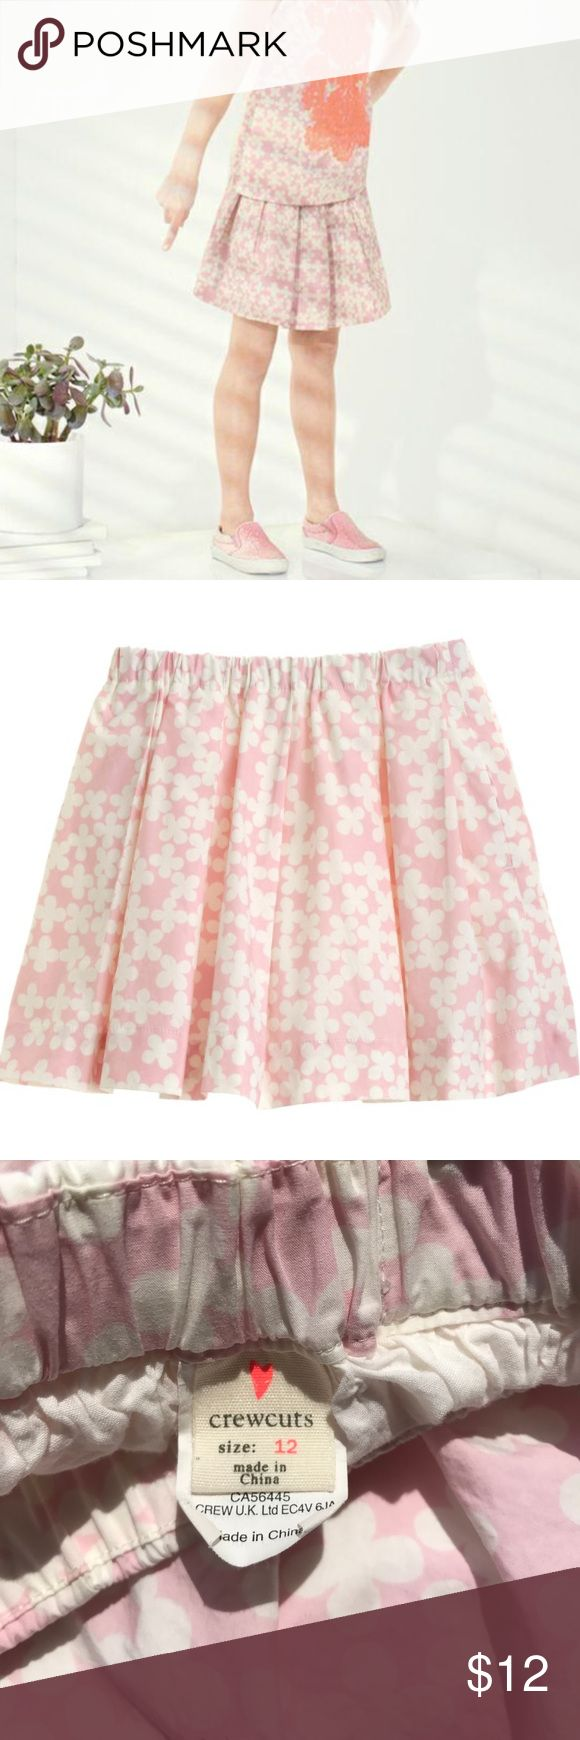 J Crew Girls Crewcuts pleated skirt - clover print J. Crew pink with white clovers print pleated skirt. Very cute skirt which unfortunately has some paint / pen stains from art class!  Fully lined. J. Crew Bottoms Skirts